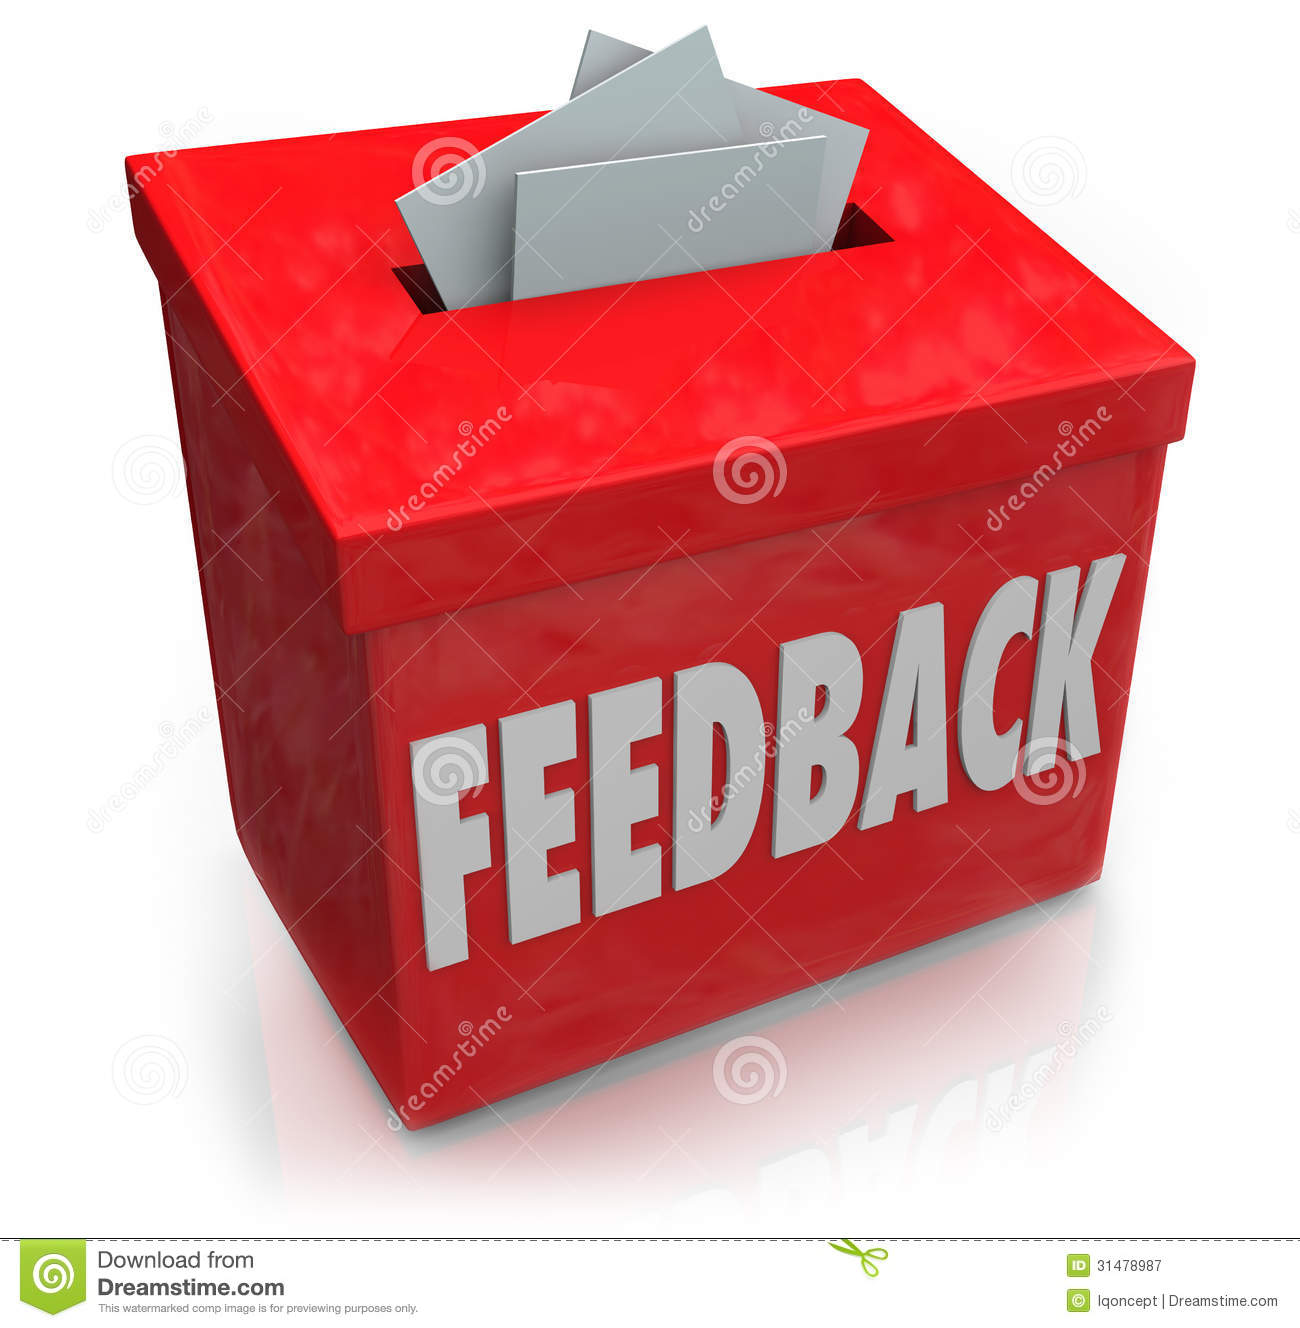 Feedback Suggestion Box Collecting Thoughts Ideas Stock